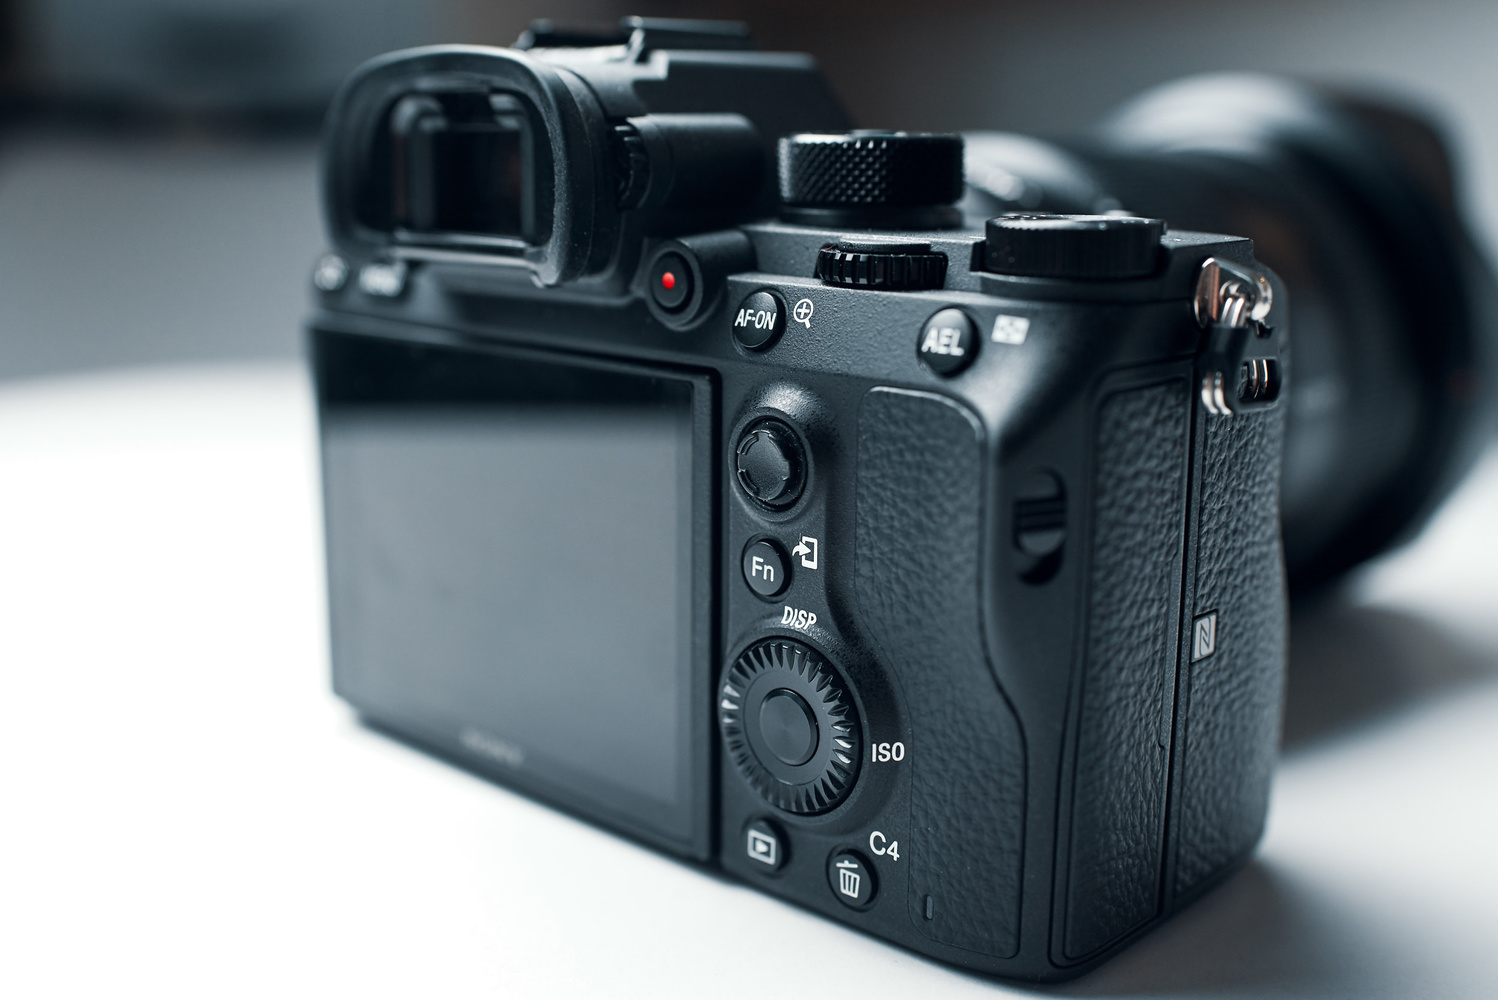 ff3c149953295 The Mirrorless Camera That Rivals the Pro DSLRs  Fstoppers Reviews ...